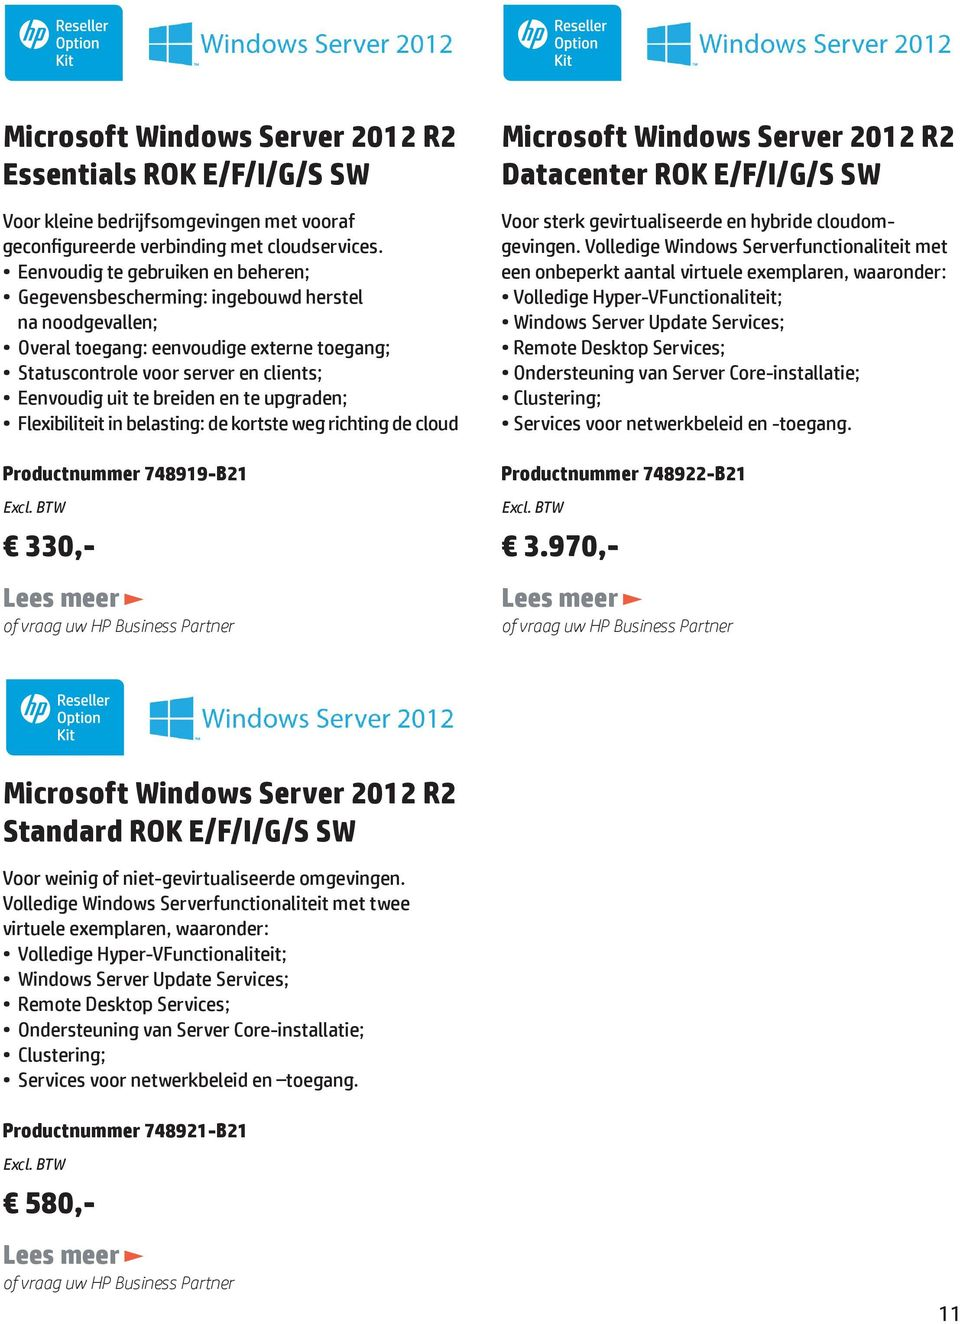 en te upgraden; Flexibiliteit in belasting: de kortste weg richting de cloud Productnummer 748919-B21 330,- Microsoft Windows Server 2012 R2 Datacenter ROK E/F/I/G/S SW Voor sterk gevirtualiseerde en